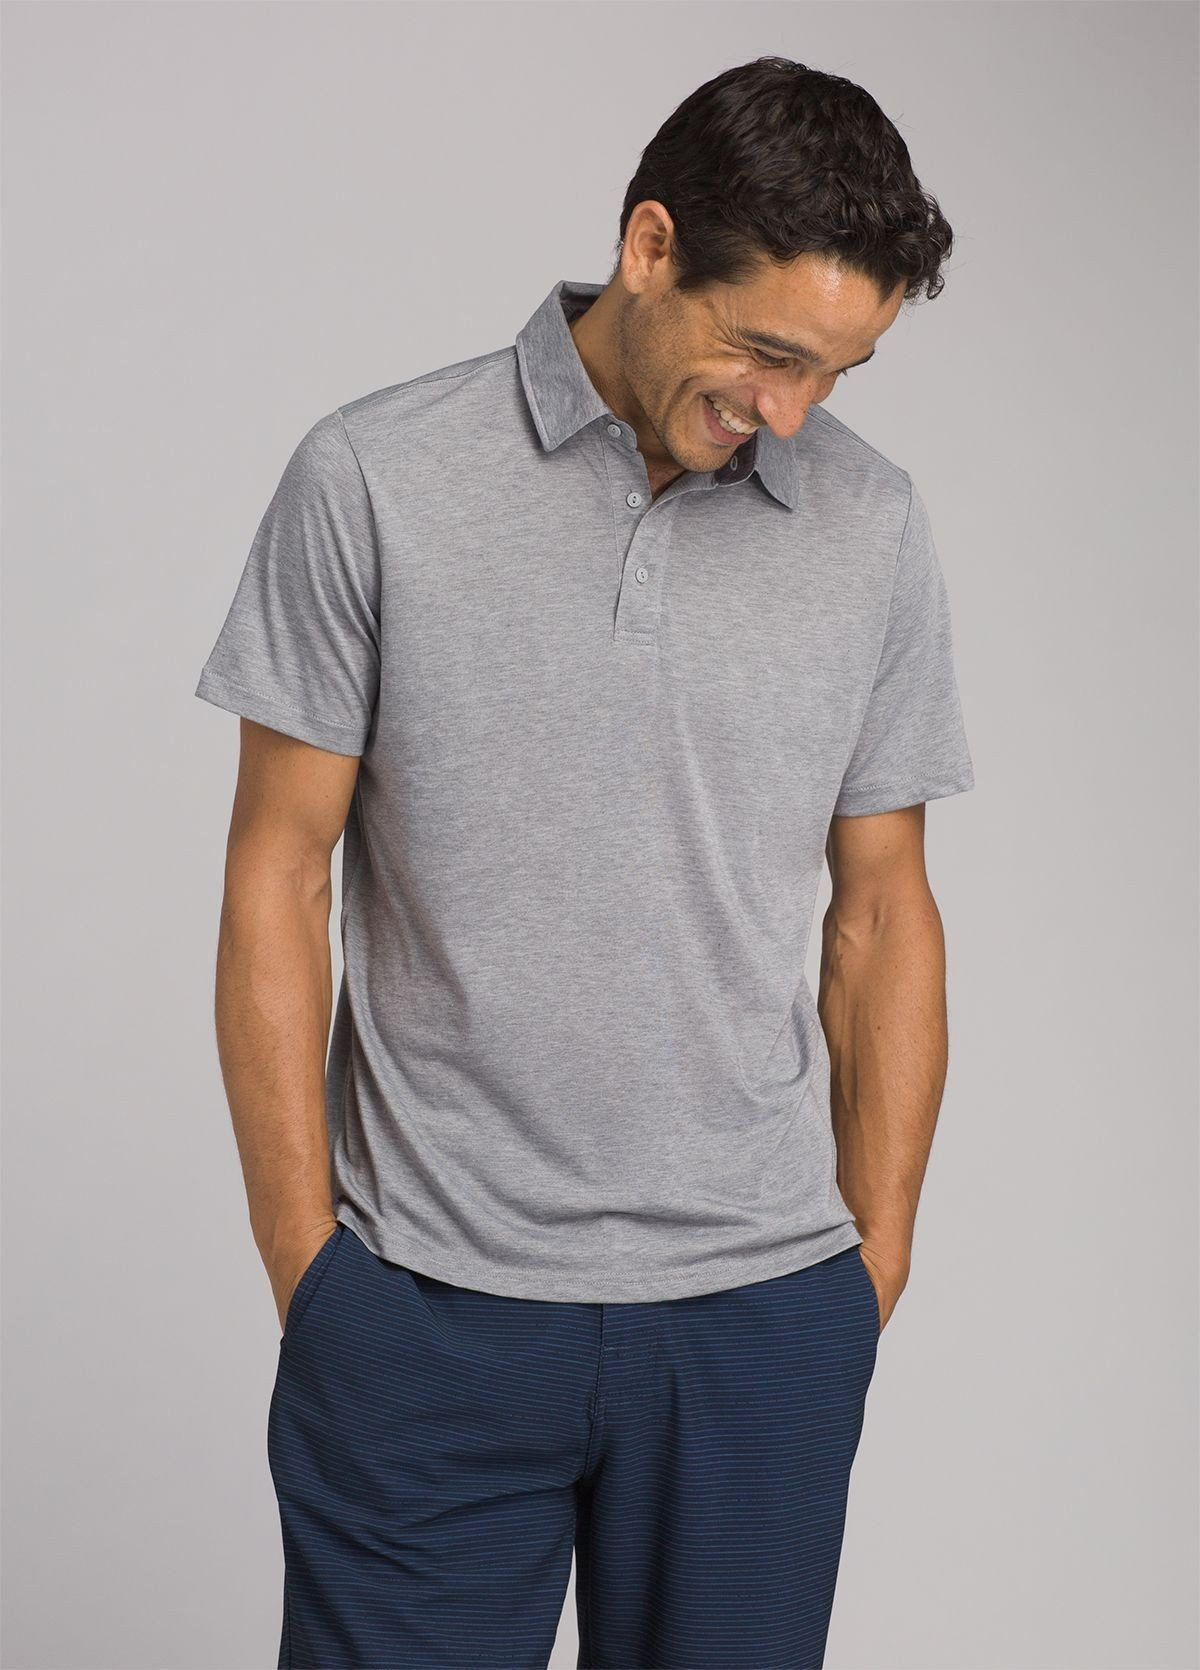 PrAna - Neriah Polo - Recycled Material - Weekendbee - sustainable sportswear